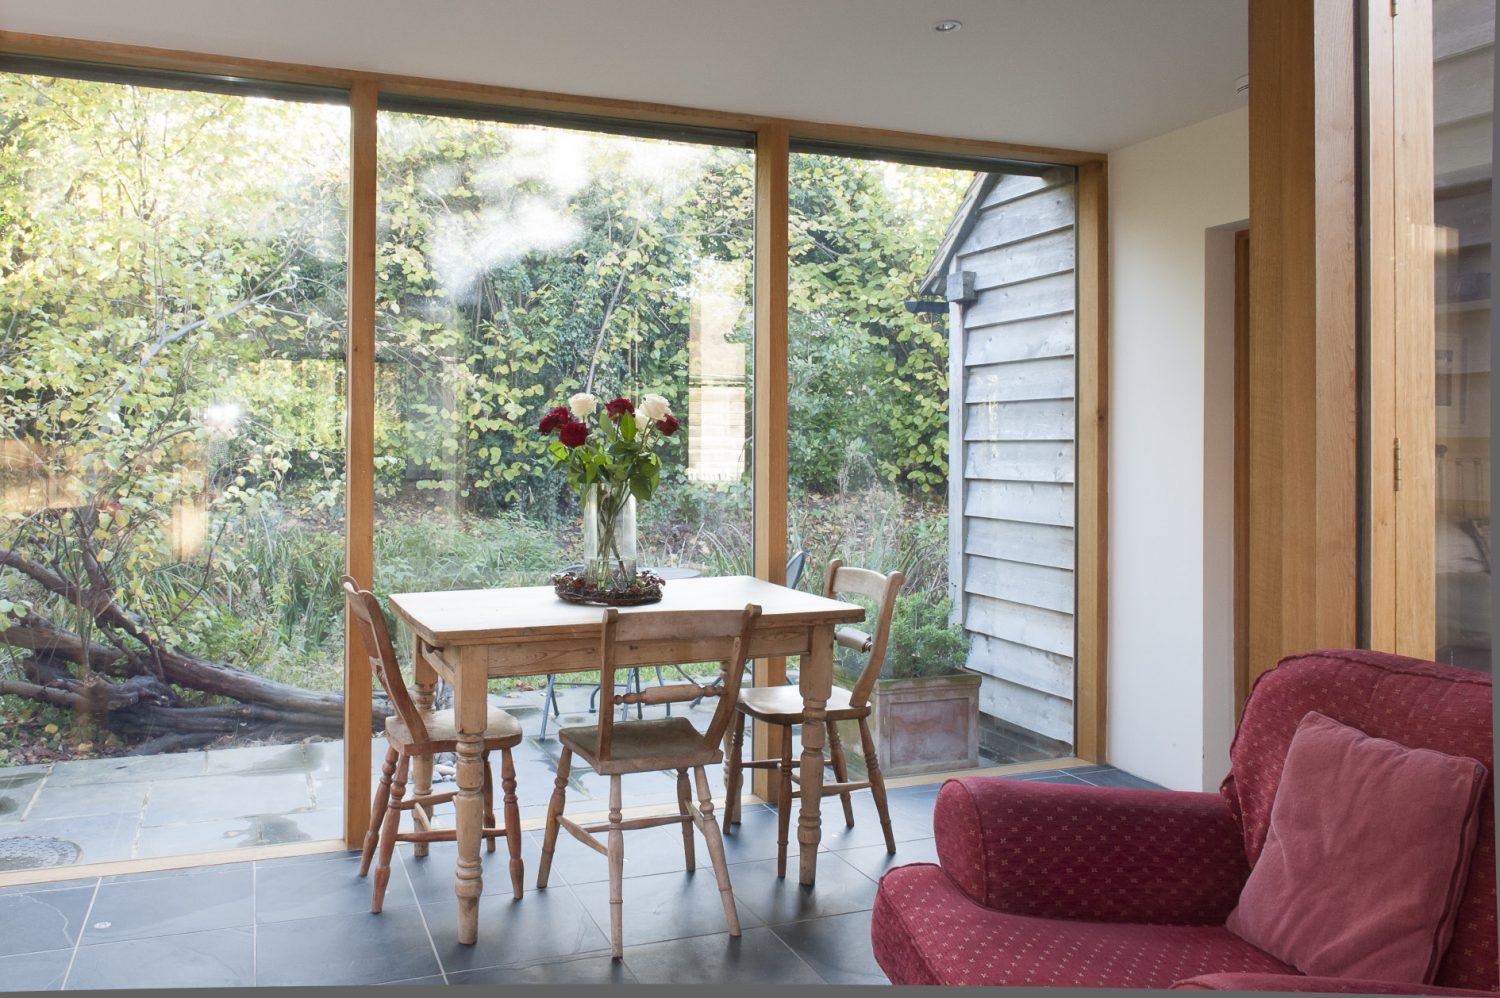 A linking room which joins the kitchen to the converted barn is more akin to a relaxing garden room